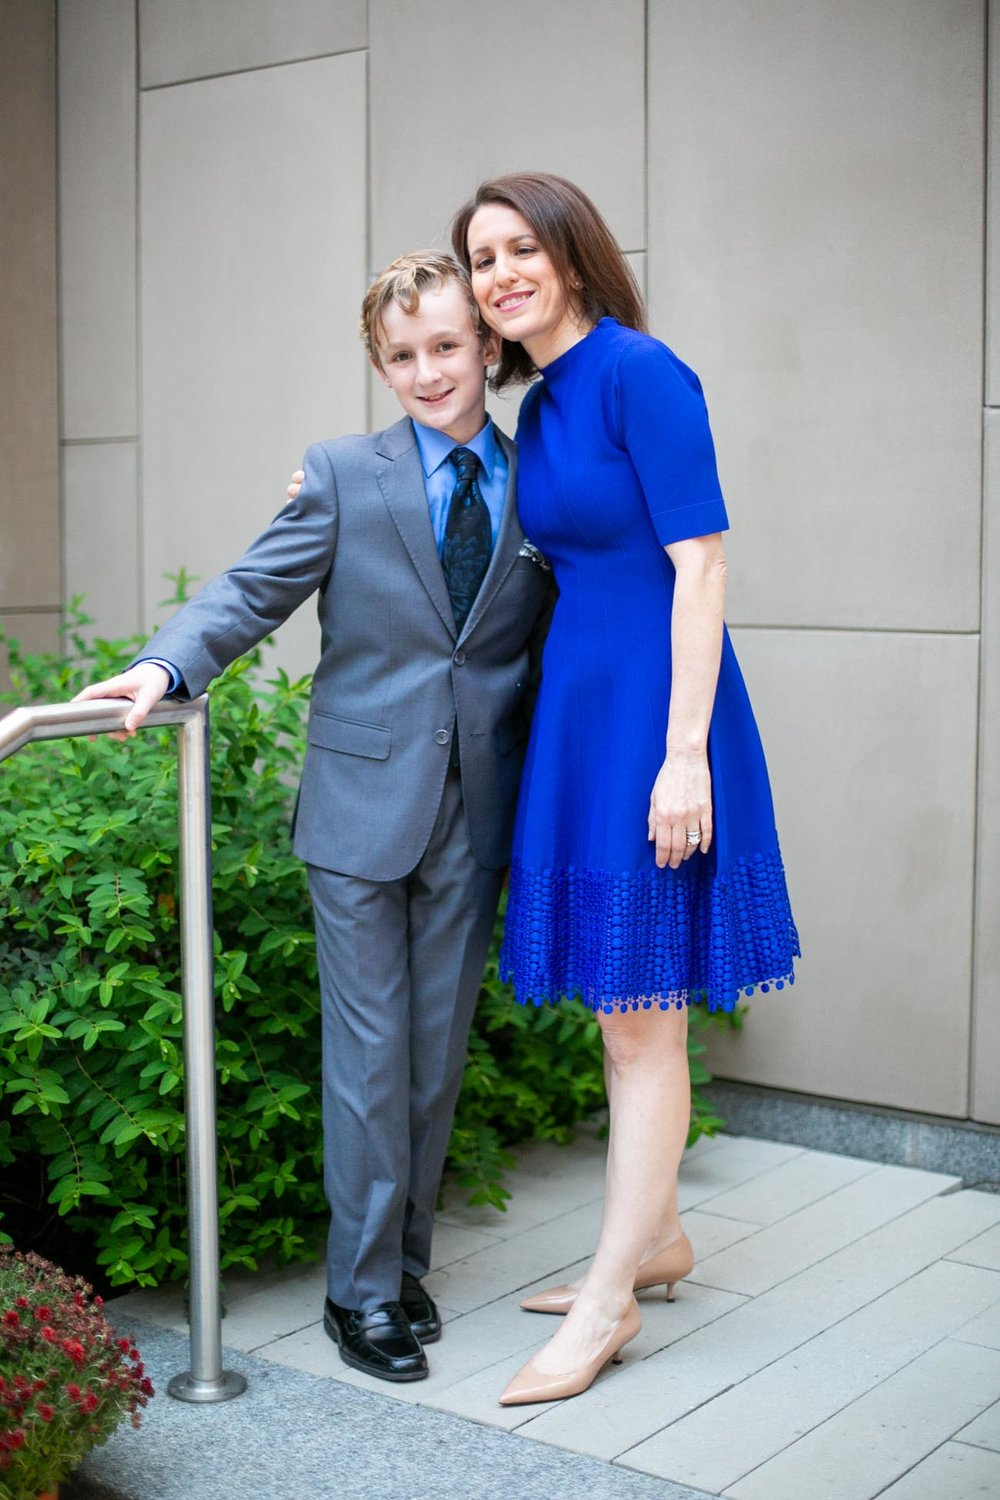 Davids Bar Mitzvah Preview-39.jpg